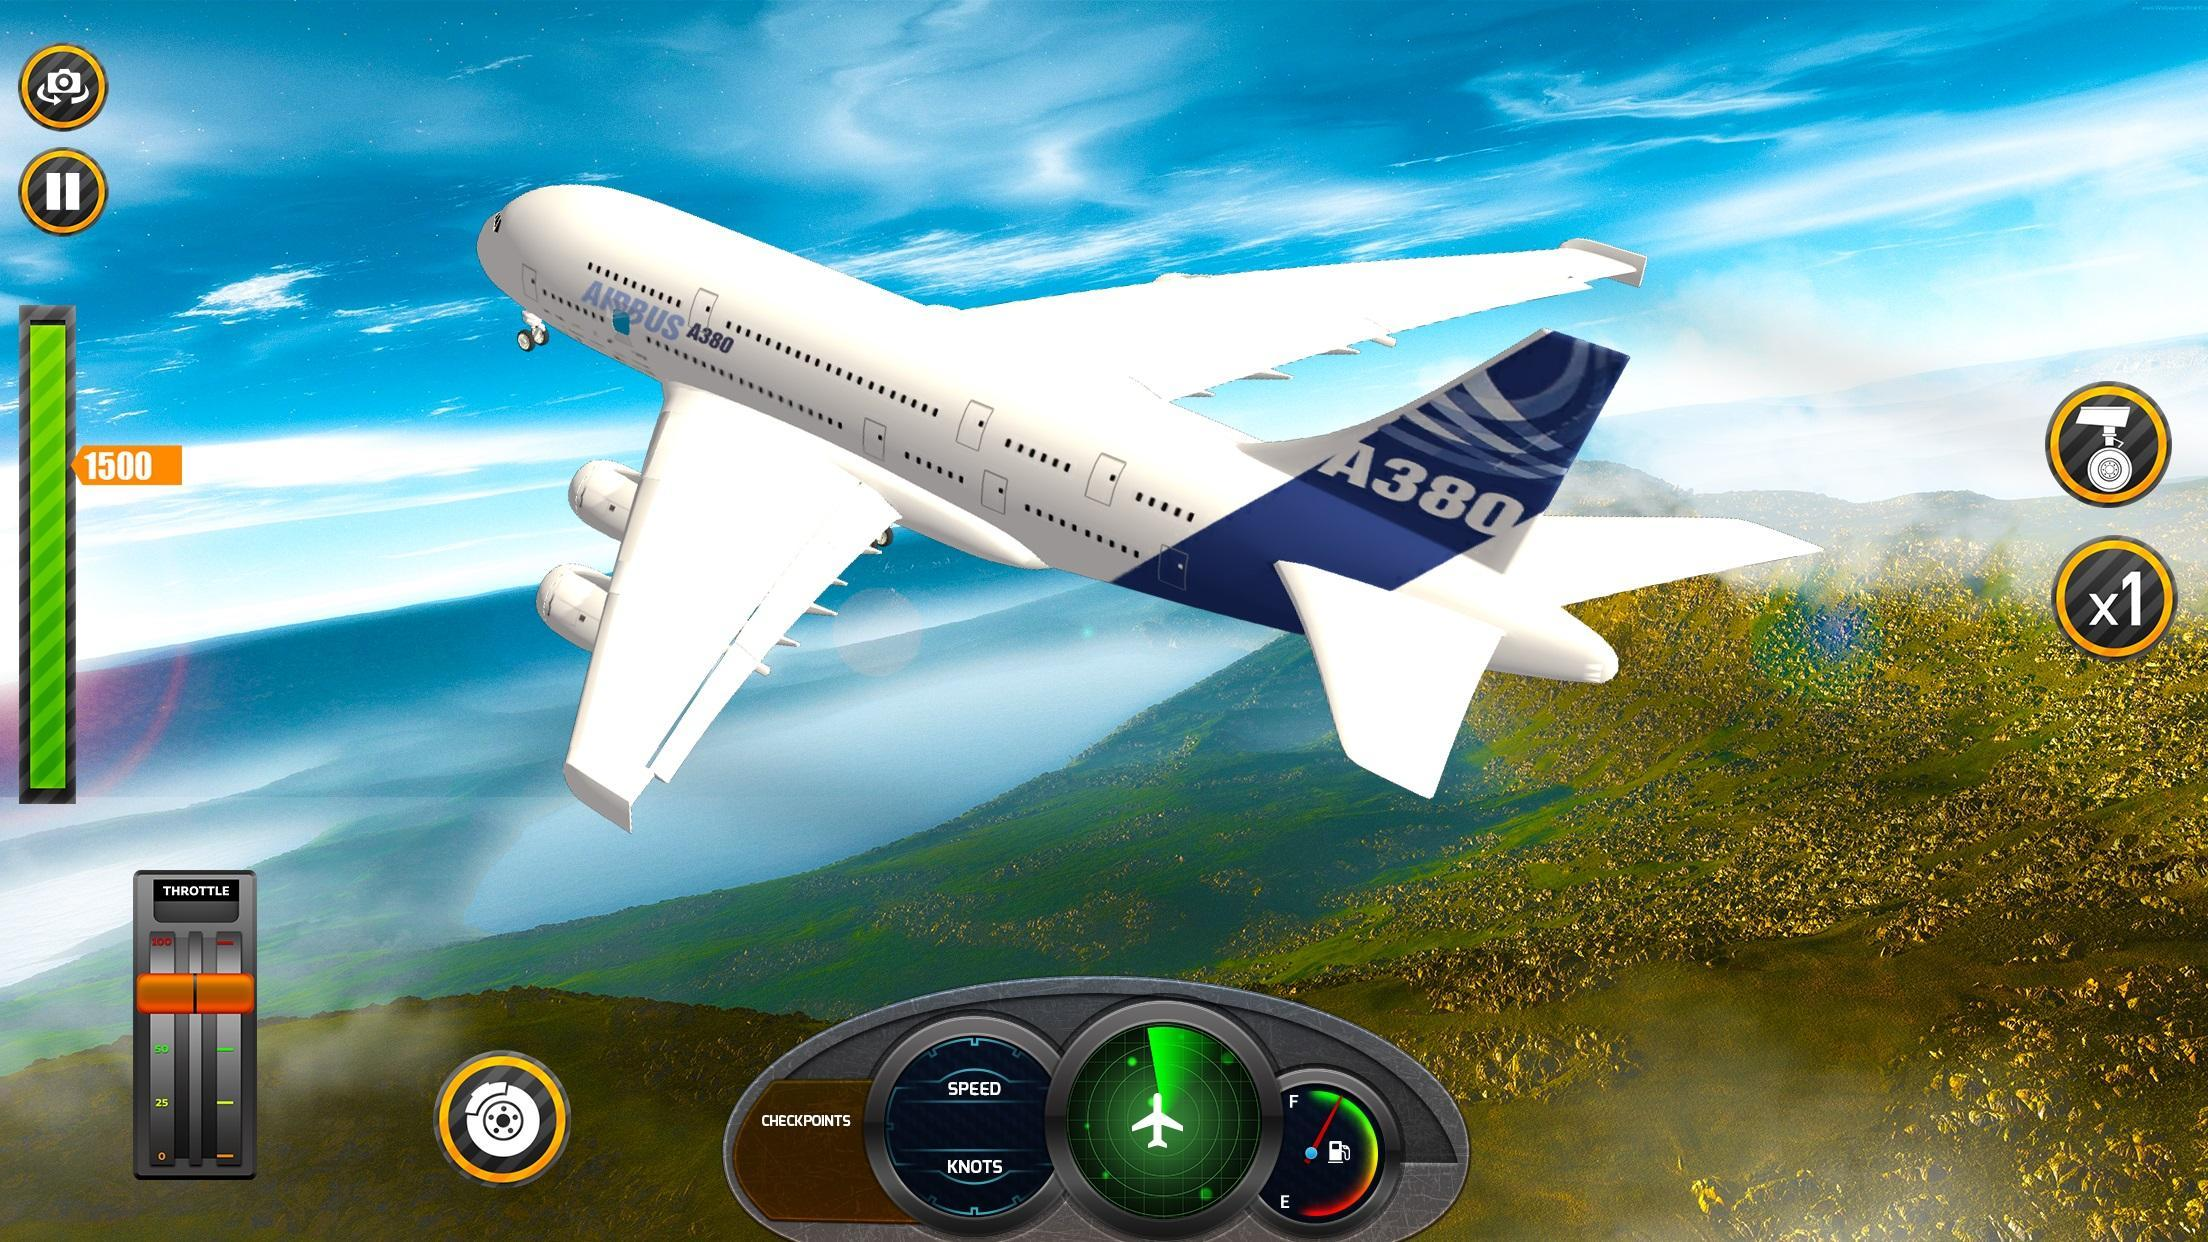 Airplane Real Flight Simulator 2020 for Android - APK Download